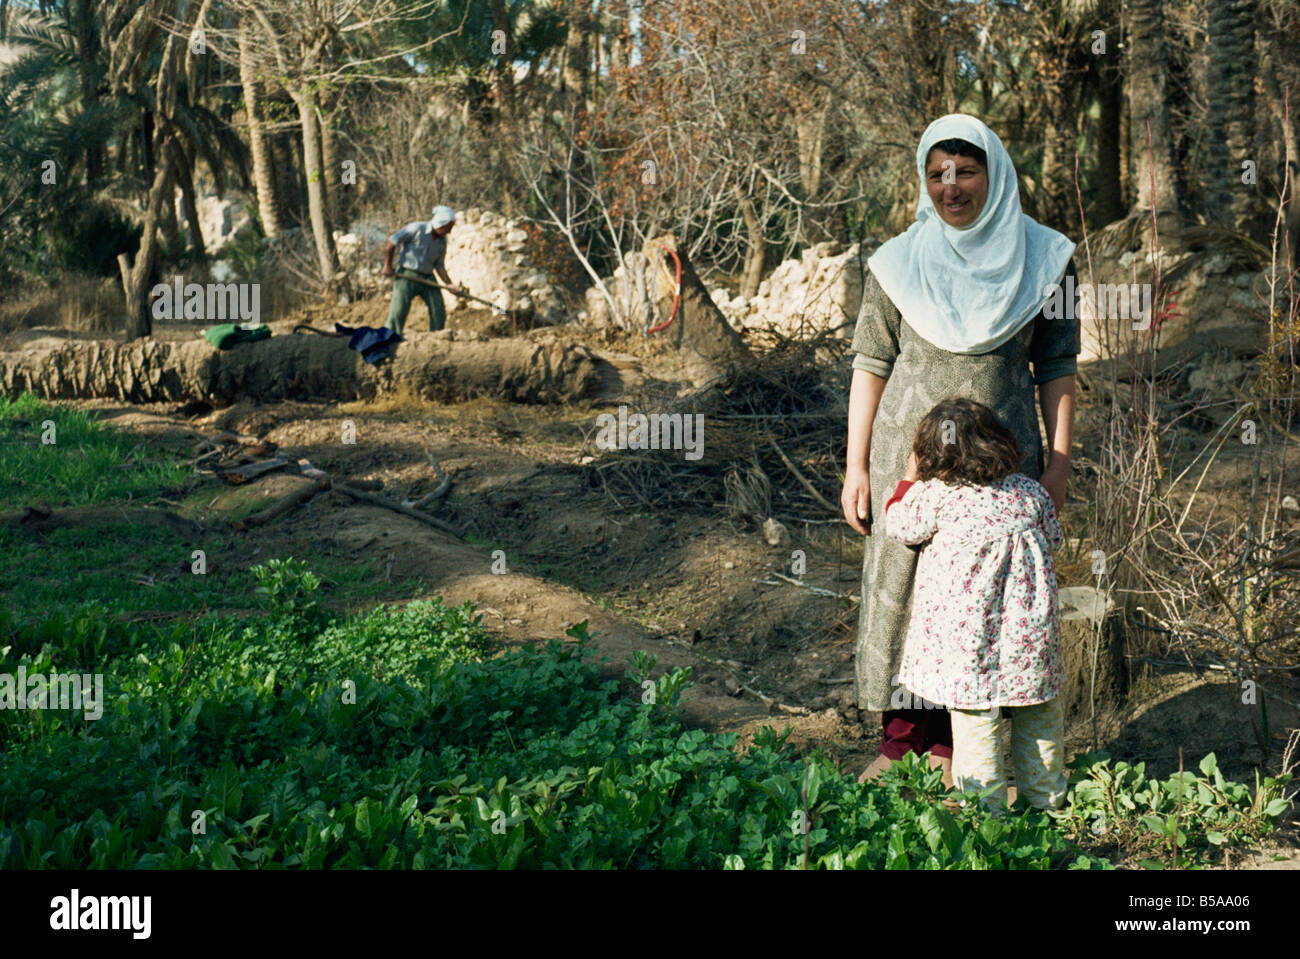 Farmers in field on Qa'lat 'Ana, taken in 1981, Iraq, Middle East - Stock Image